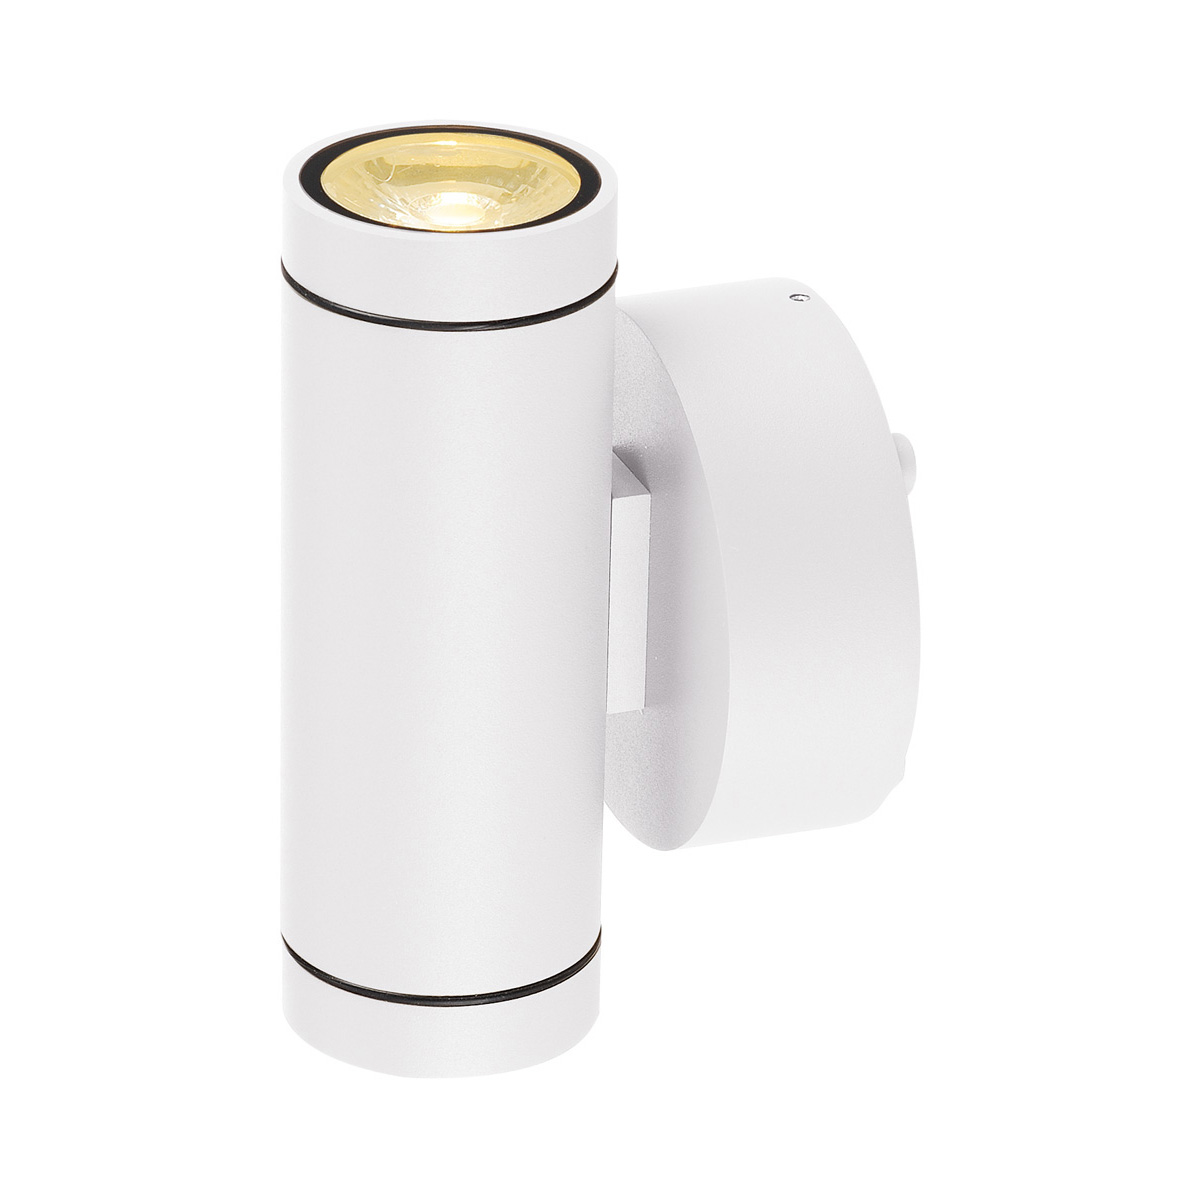 slv helia wandleuchte led 3000k wei up down 2x6w 233231. Black Bedroom Furniture Sets. Home Design Ideas